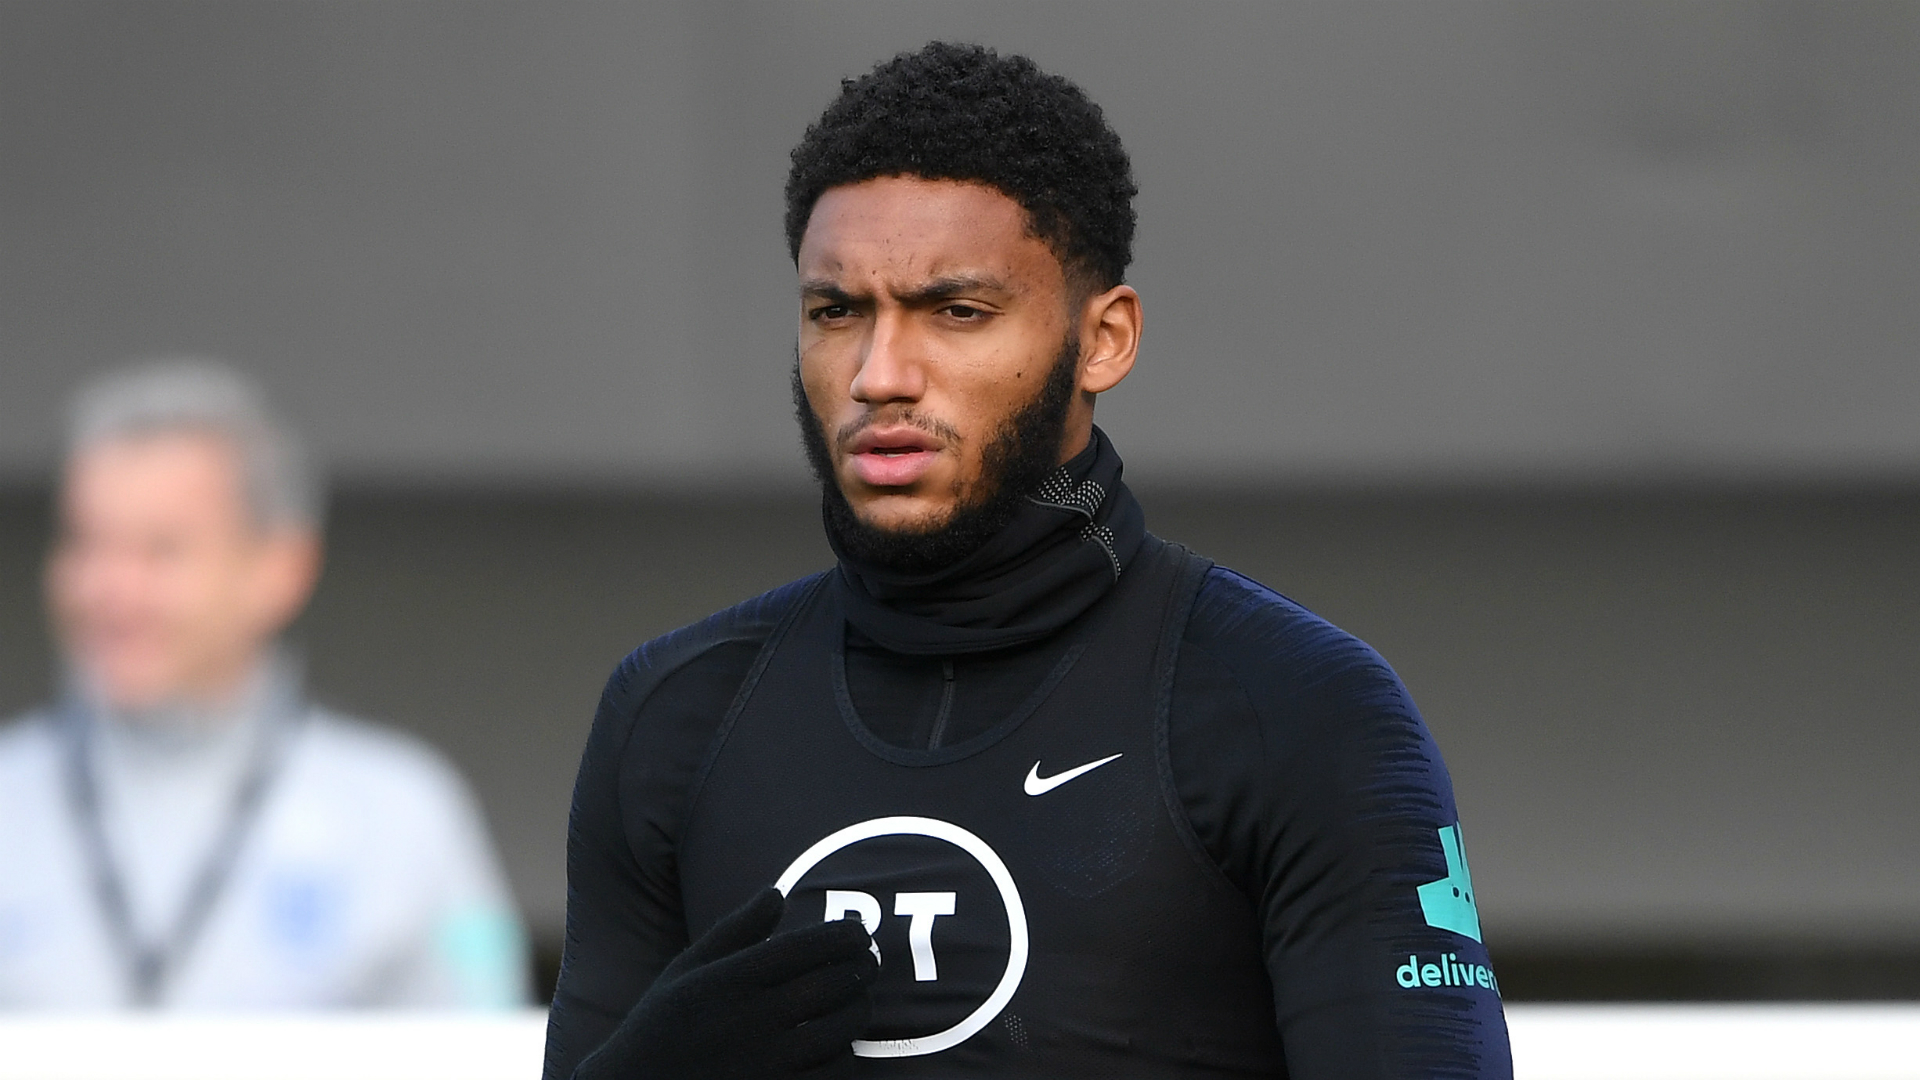 """Leaving the England camp will allow Joe Gomez to """"clear his head"""" following a challenging few days, Gareth Southgate said."""